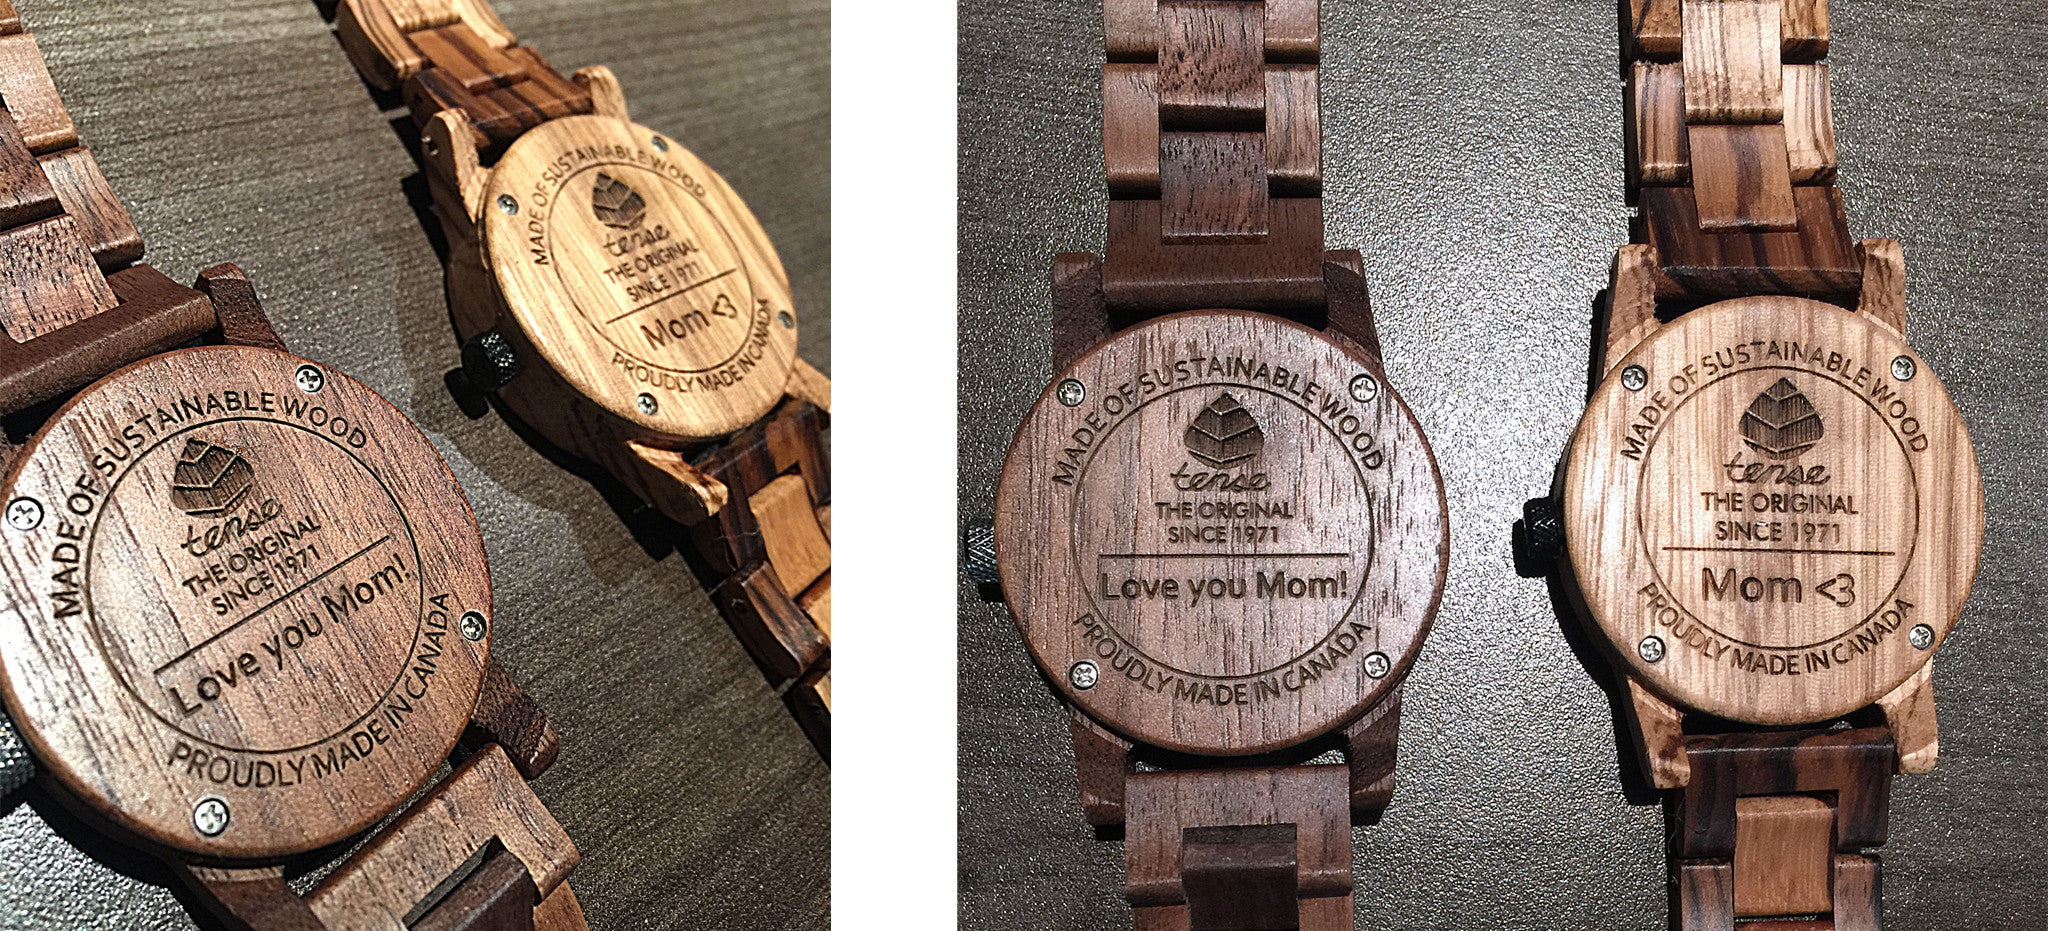 Tense Watches - Custom Engraved Watches For Mother's Day